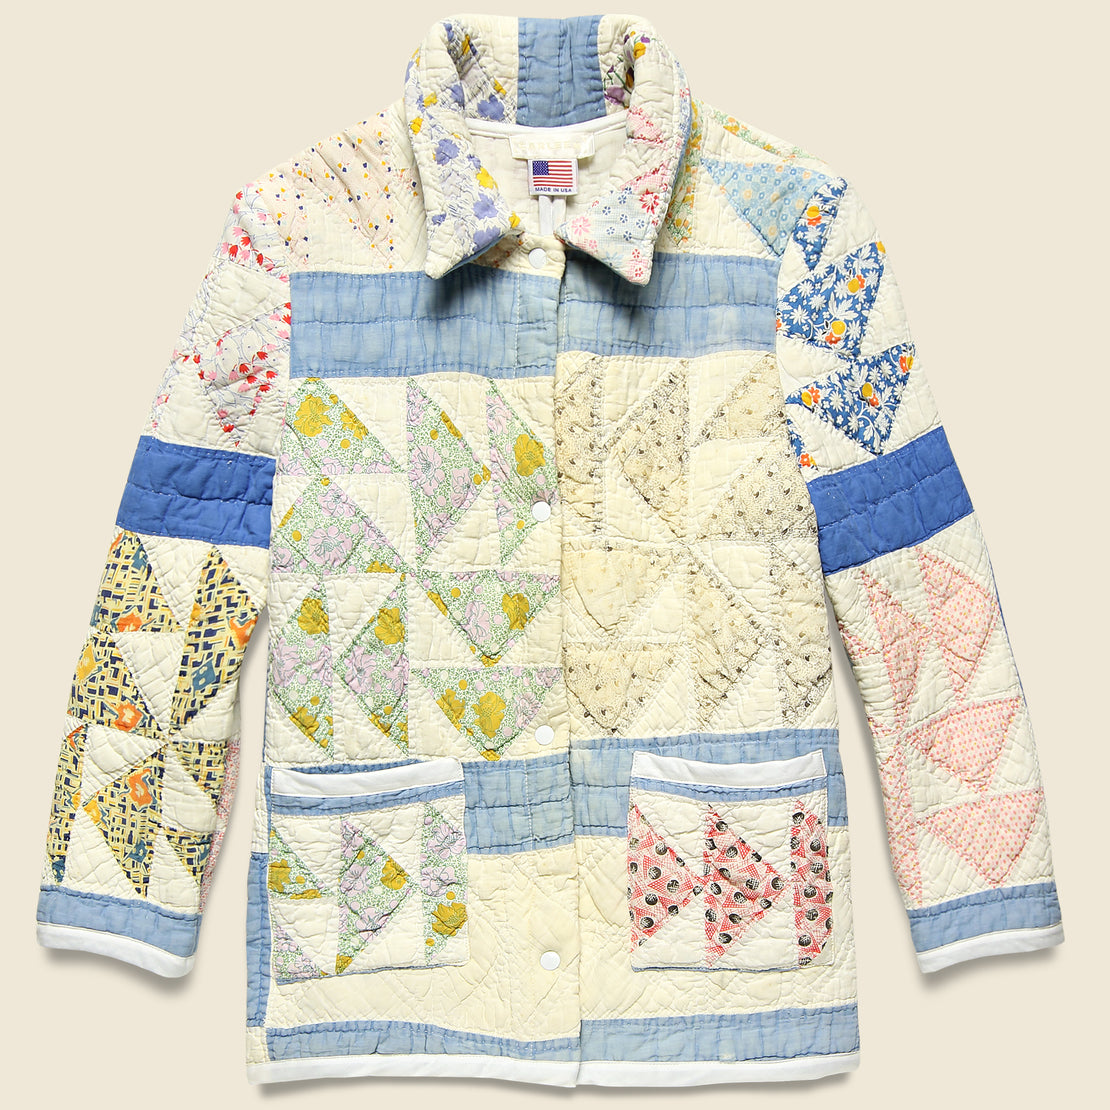 Carleen Moving Day Quilt Jacket - Blue/Green/Pink